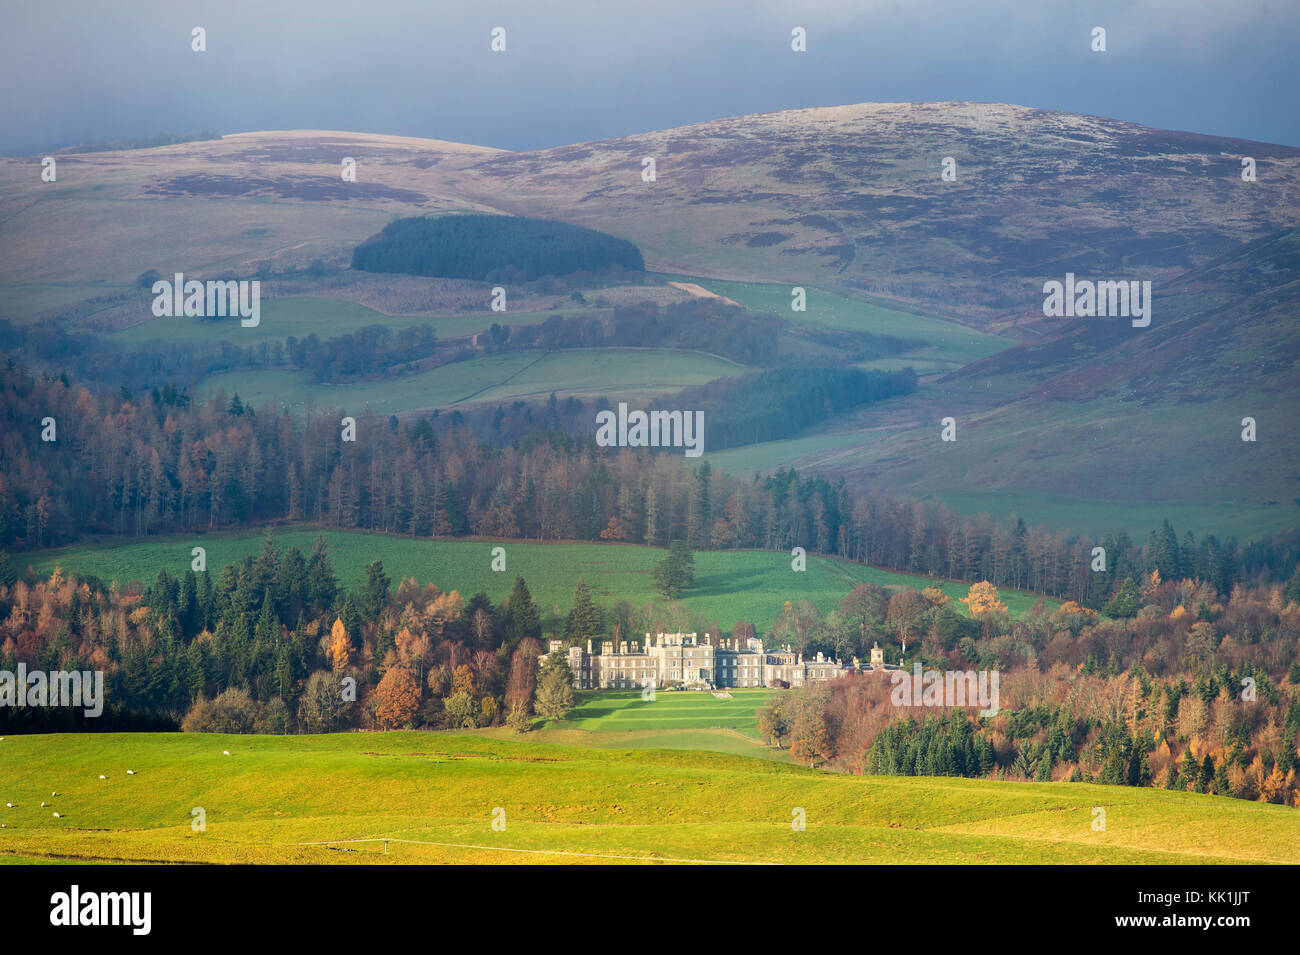 Bowhill House, Bowhill estate, Selkirk, Scottish Borders, Scotland. - Stock Image